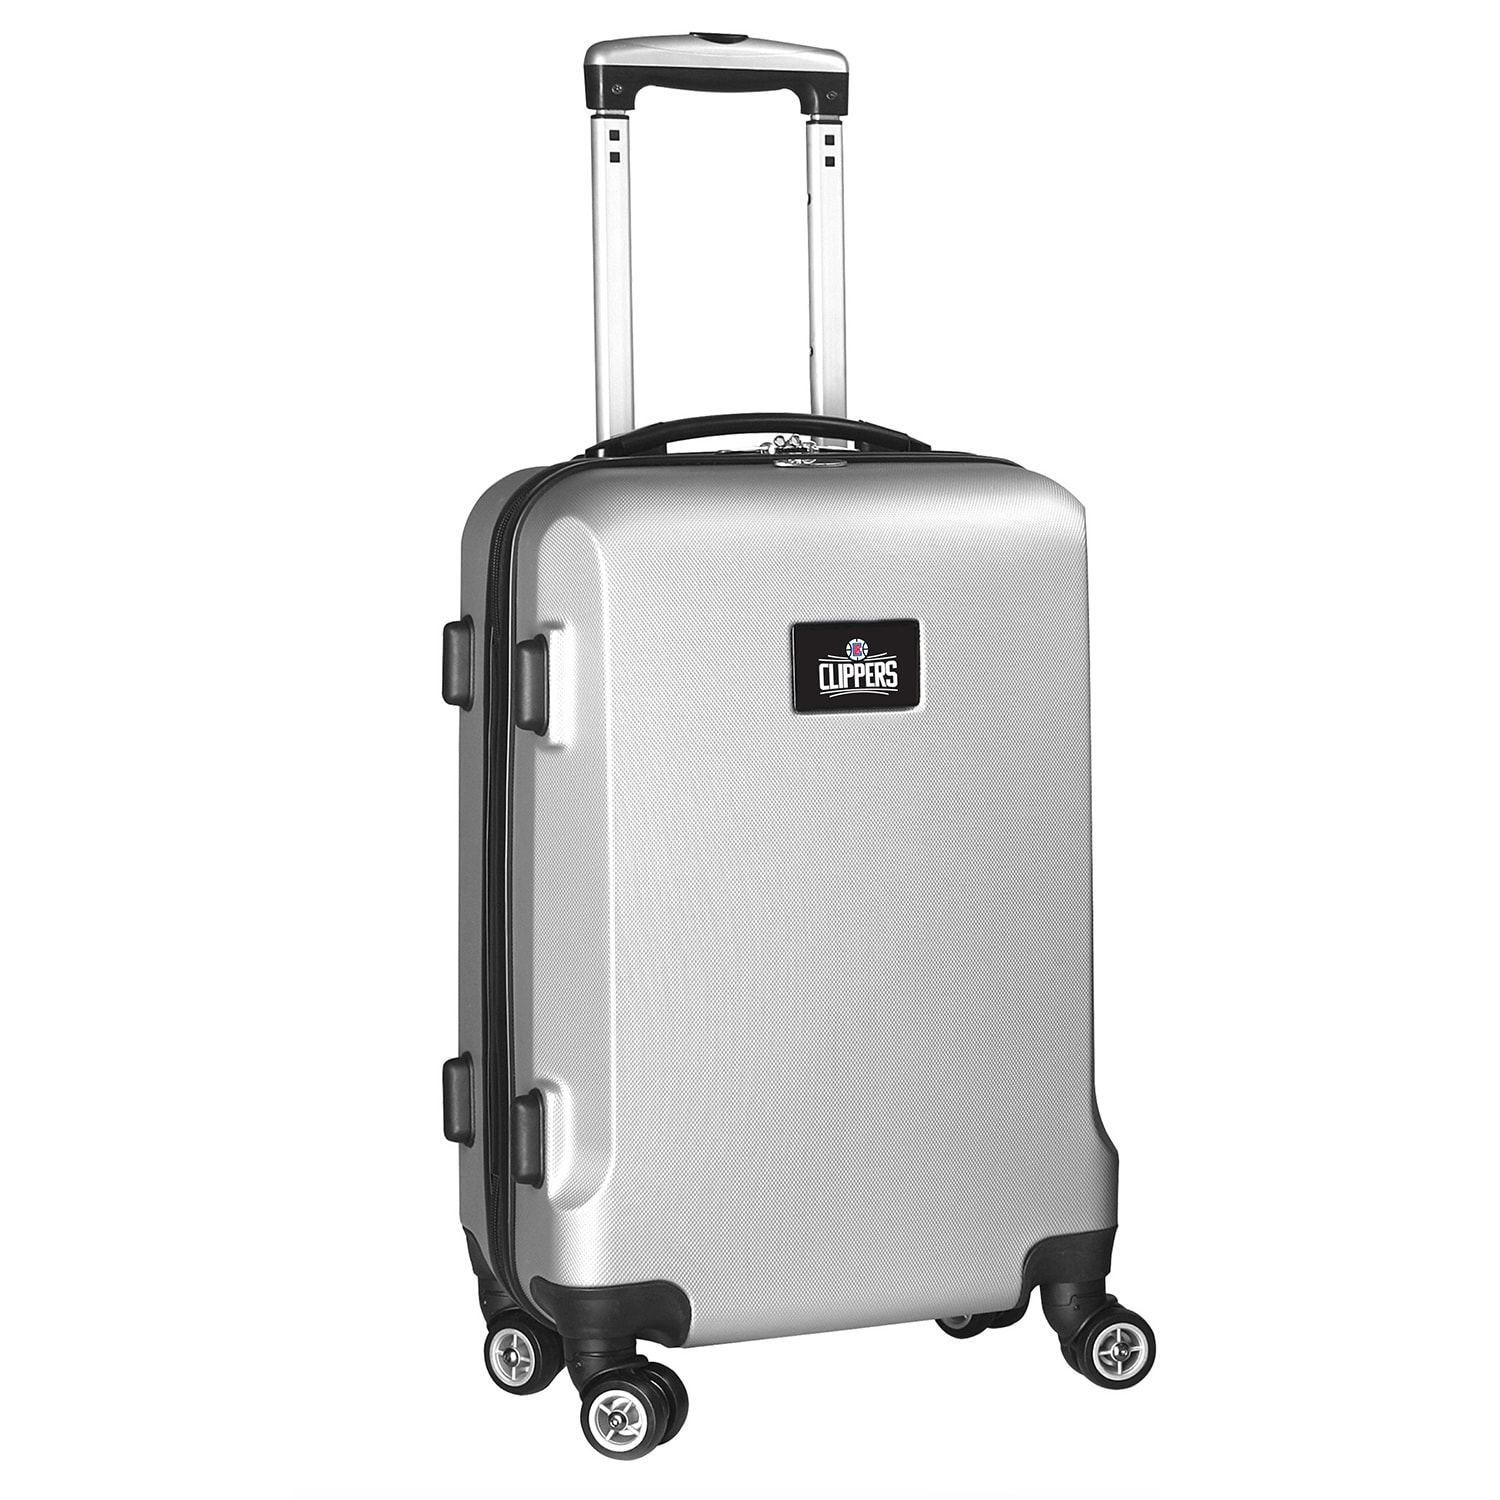 "LA Clippers 21"" 8-Wheel Hardcase Spinner Carry-On - Silver"